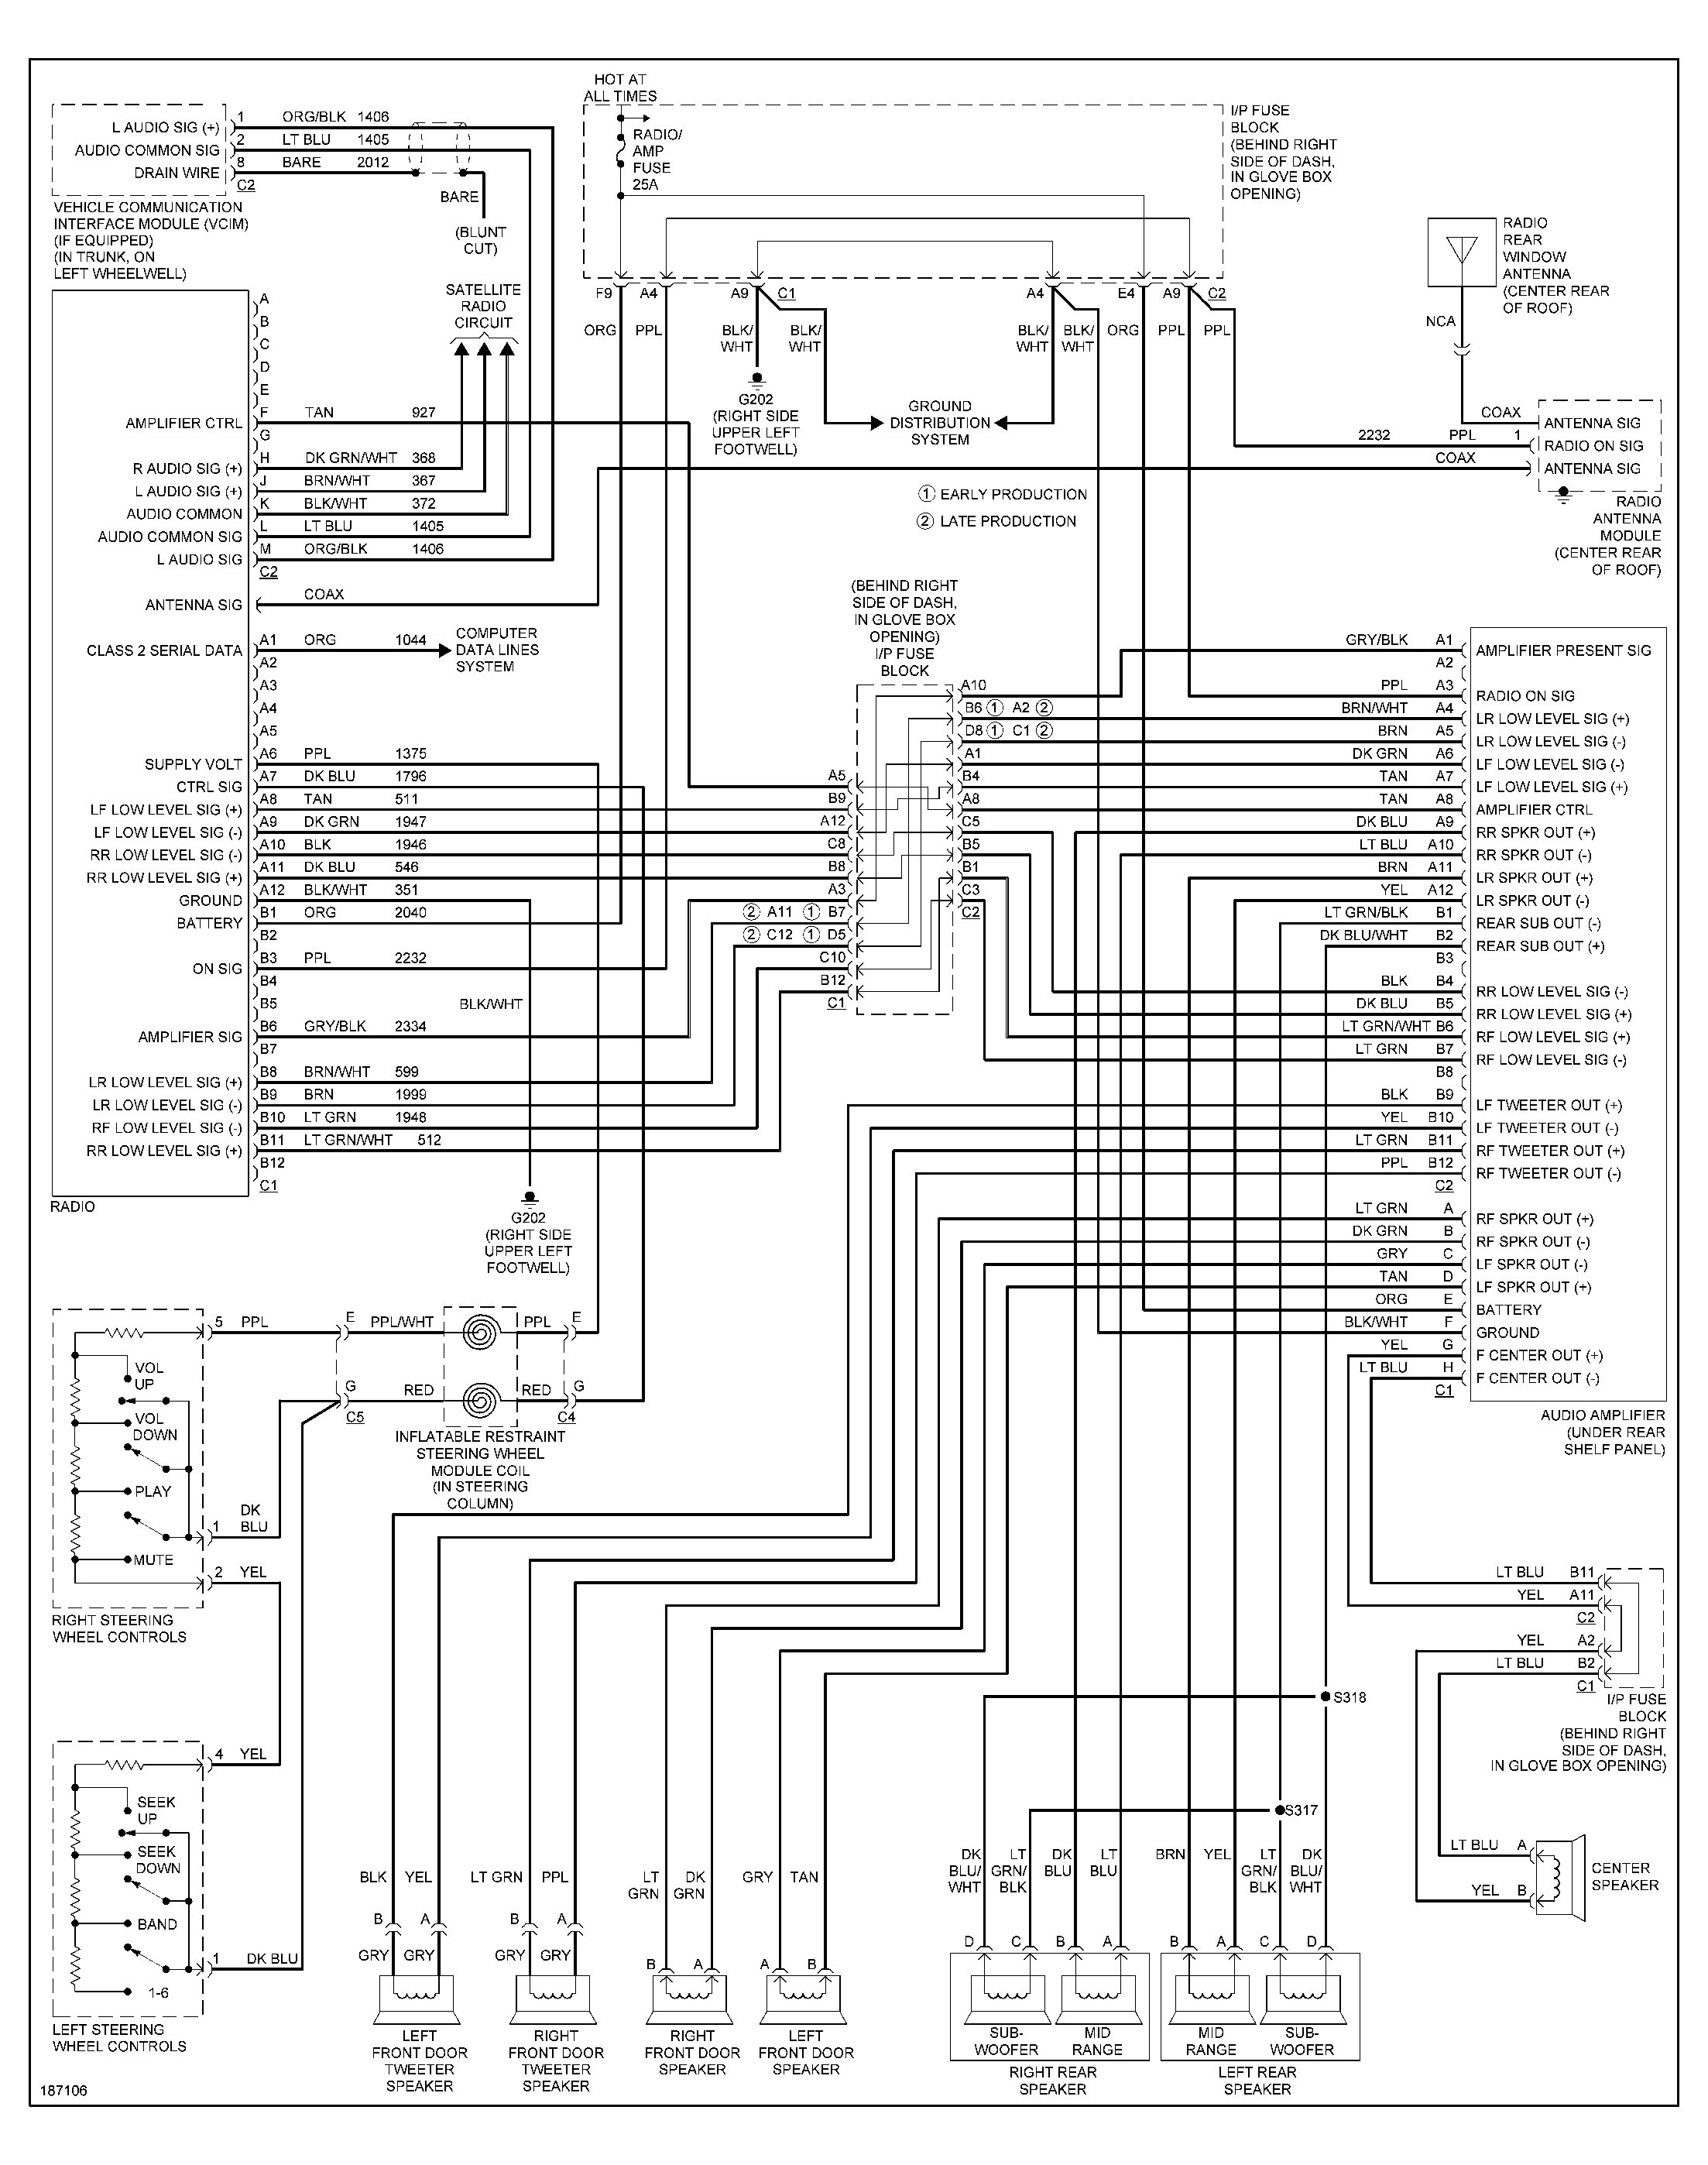 2 2 Ecotec Engine Diagram Alero 2 4 Engine Diagram Experts Wiring Diagram • Of 2 2 Ecotec Engine Diagram